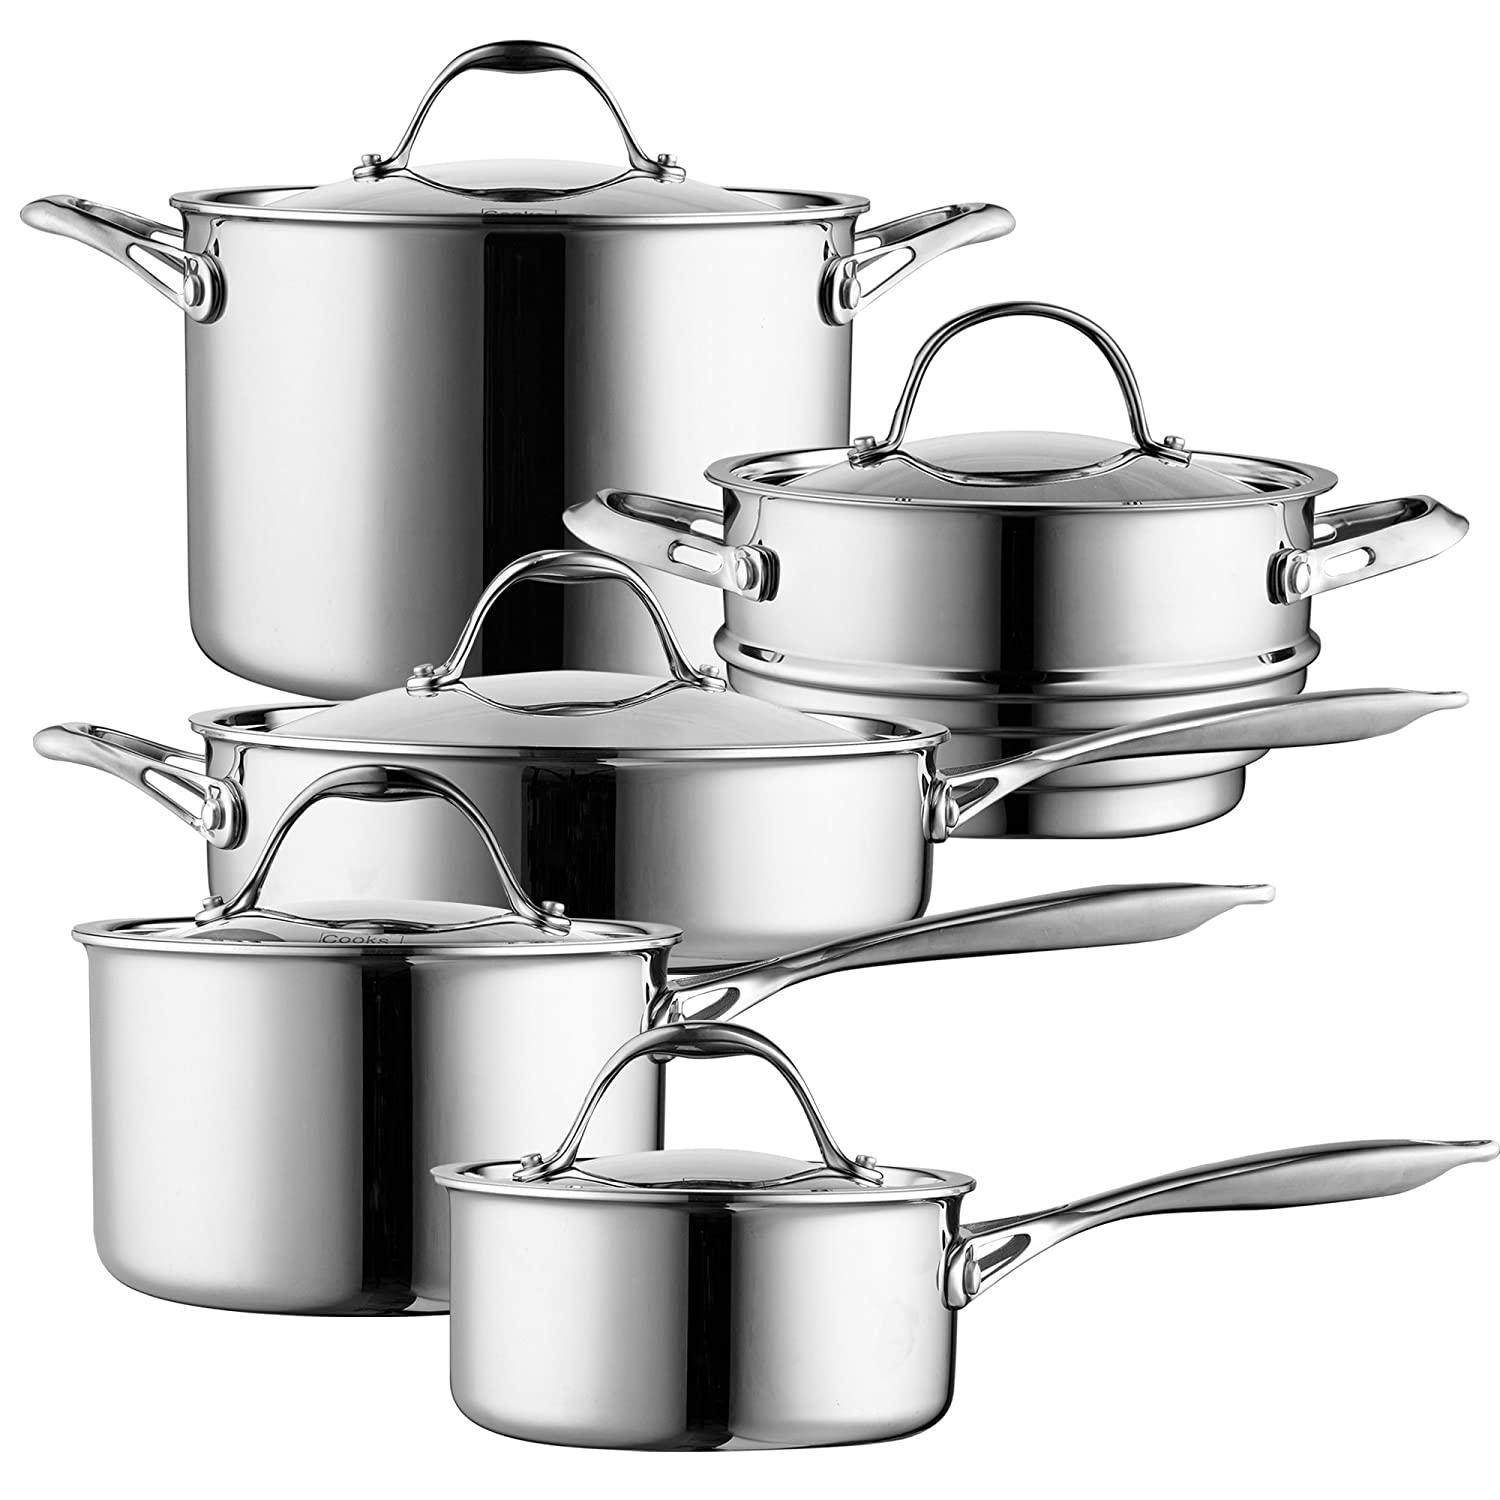 Stainless Steel 02459 Cooks Standard 10 Piece Multi-Ply Clad Cookware Set